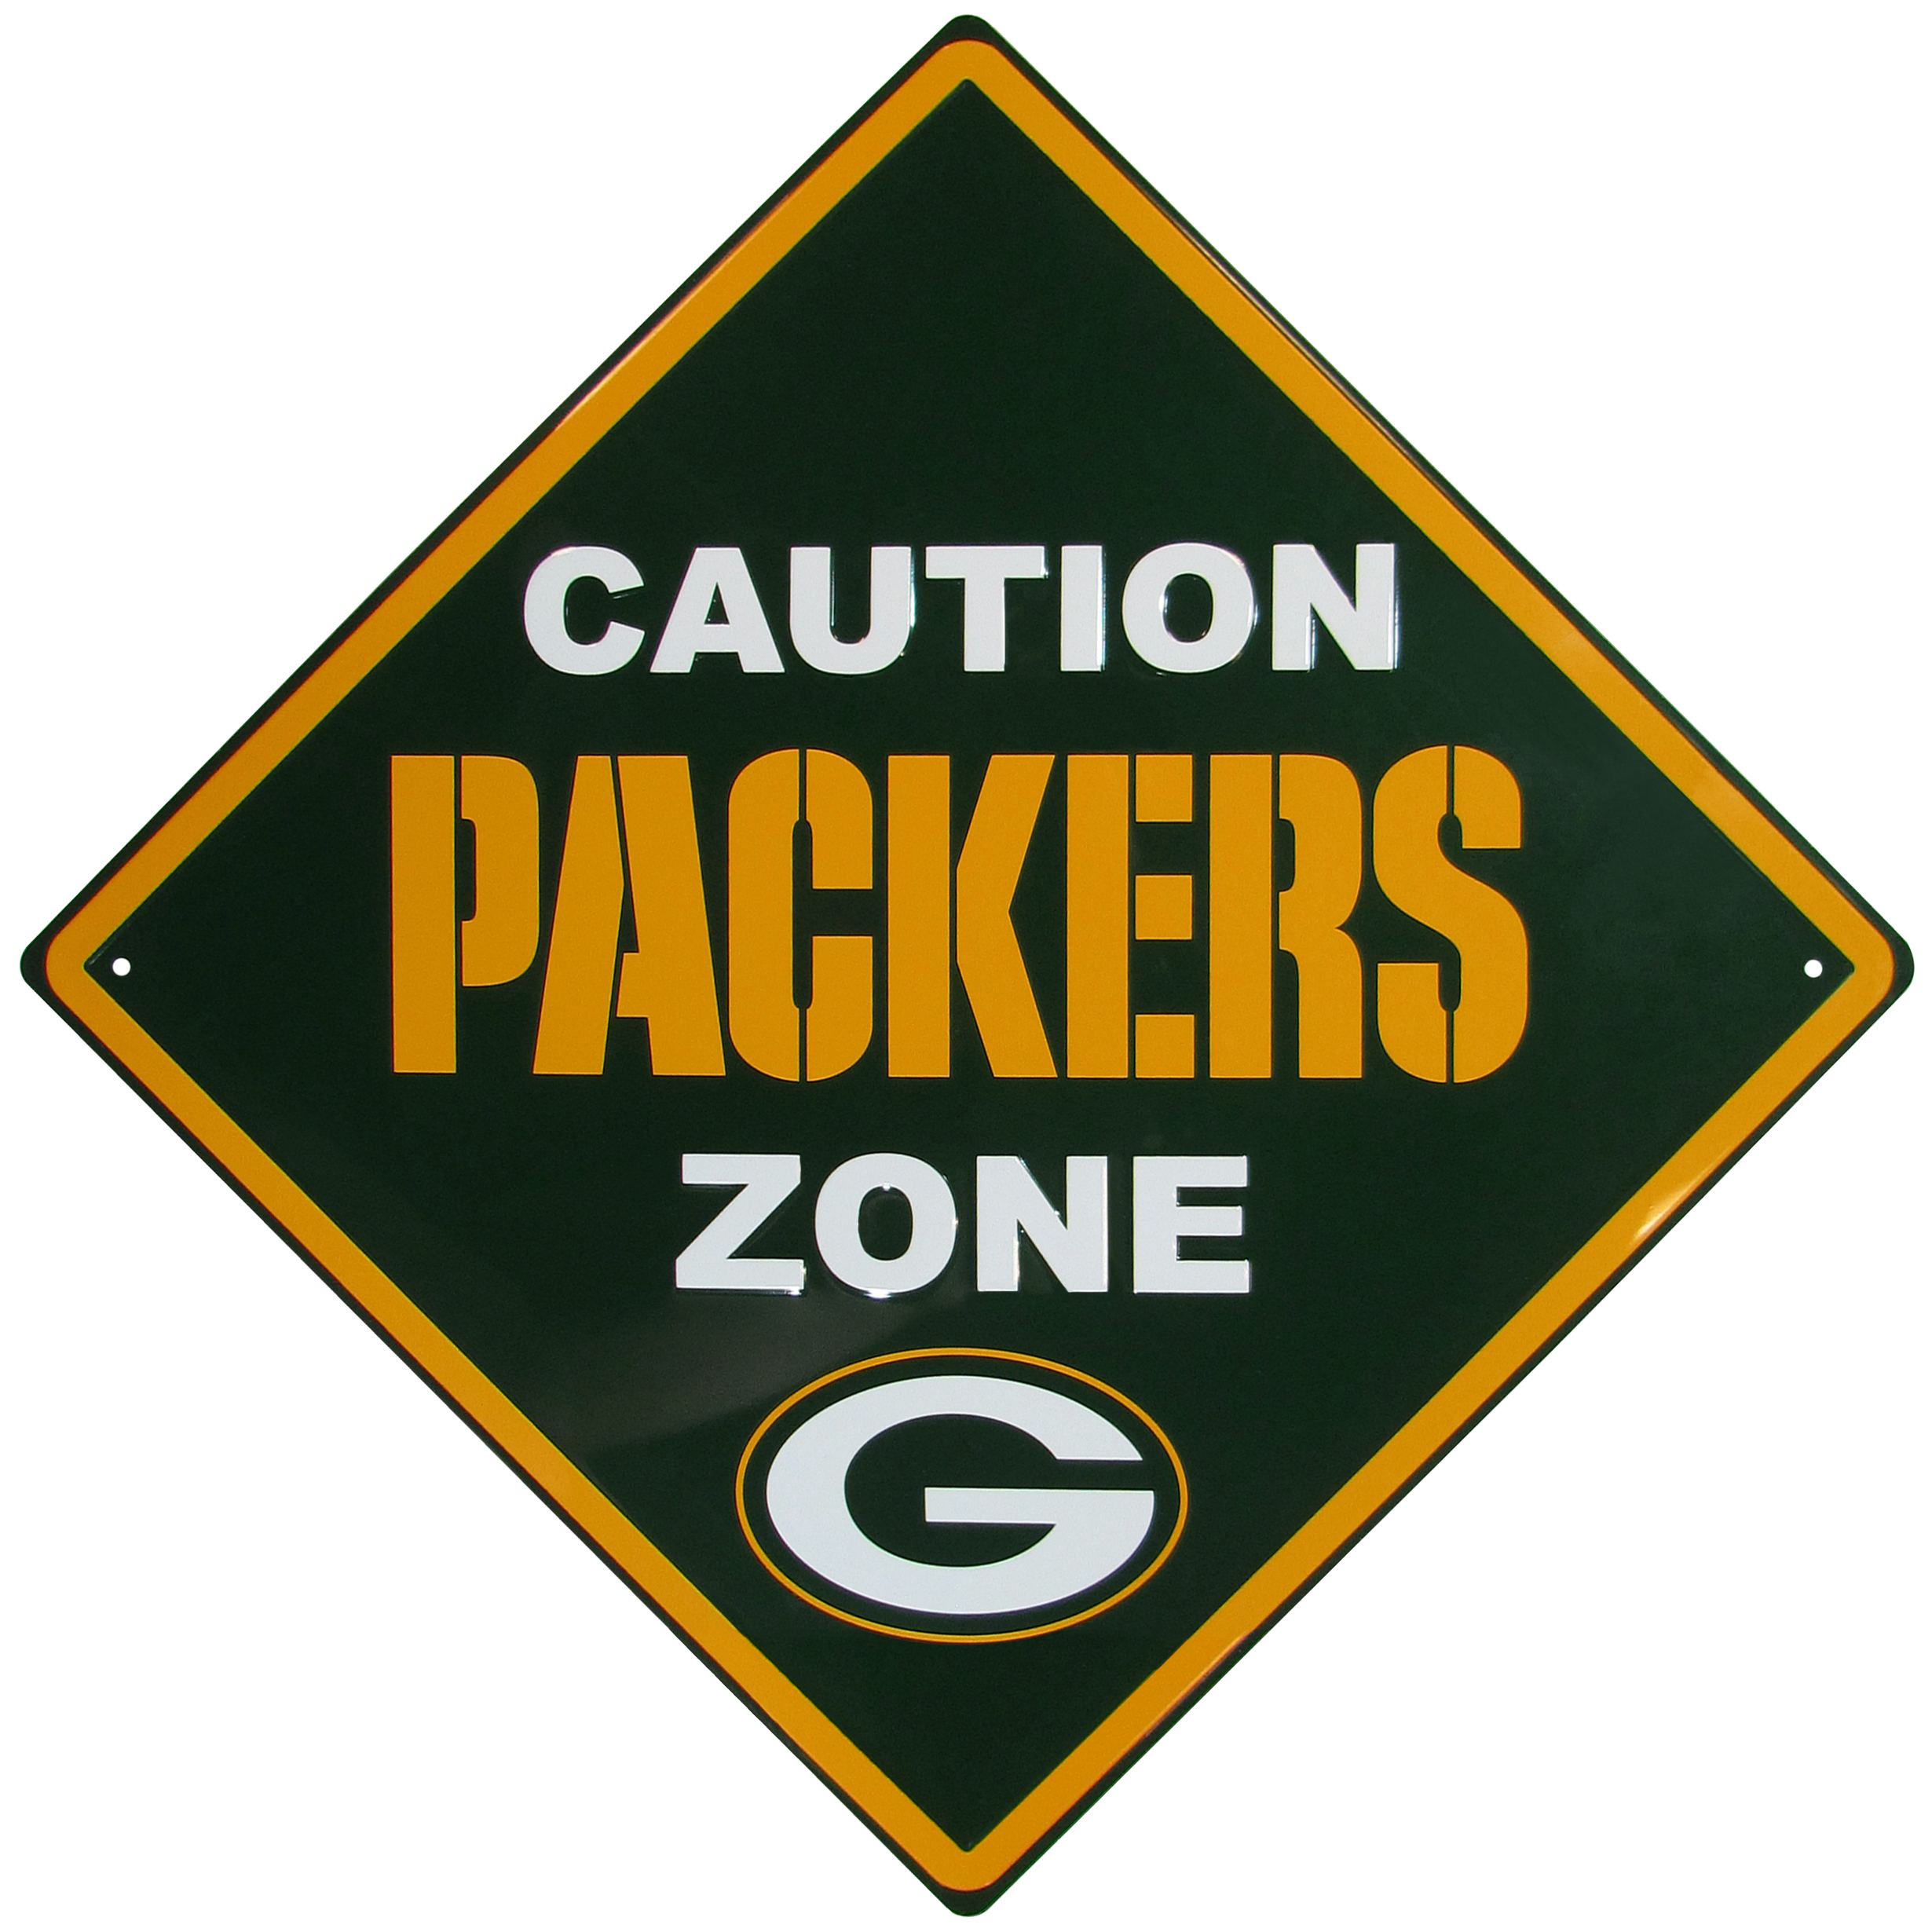 Green Bay Packers Caution Wall Sign Plaque - Let everyone know that they are entering Green Bay Packers territory! Our 14 inch caution wall plaques are a the perfect way to convert any room into a fan cave! The light-weight aluminum signs mount easily to any wall and are perfect for the home or office.